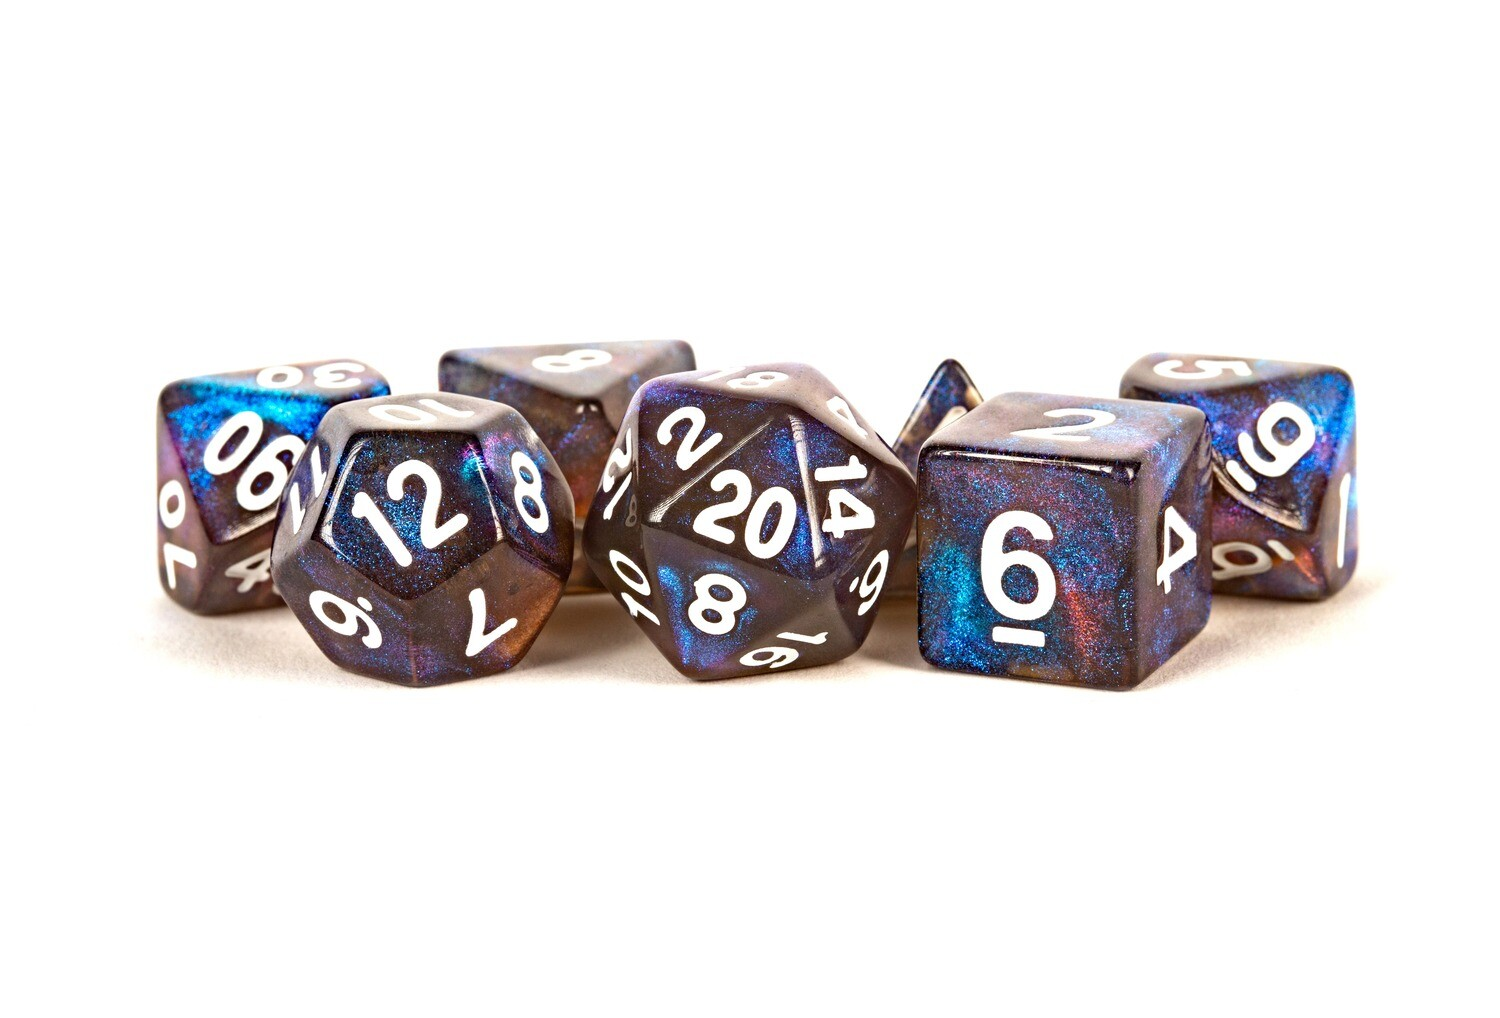 Stardust Galaxy 16mm Poly Dice Set Tabletop RPG Gaming Roleplay Games